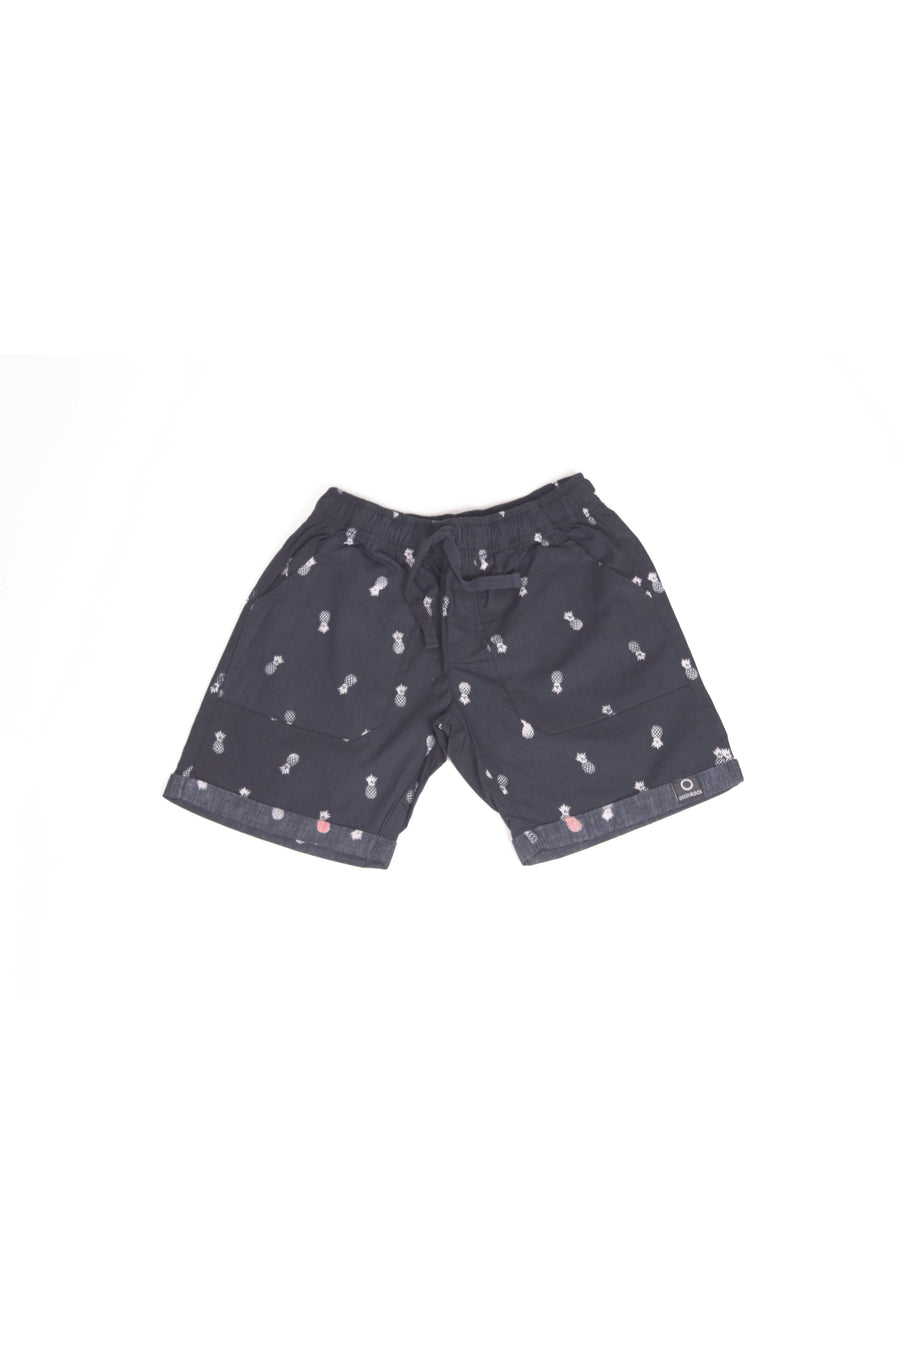 Short Kids Pineapple Navy - Greenrock Indonesia